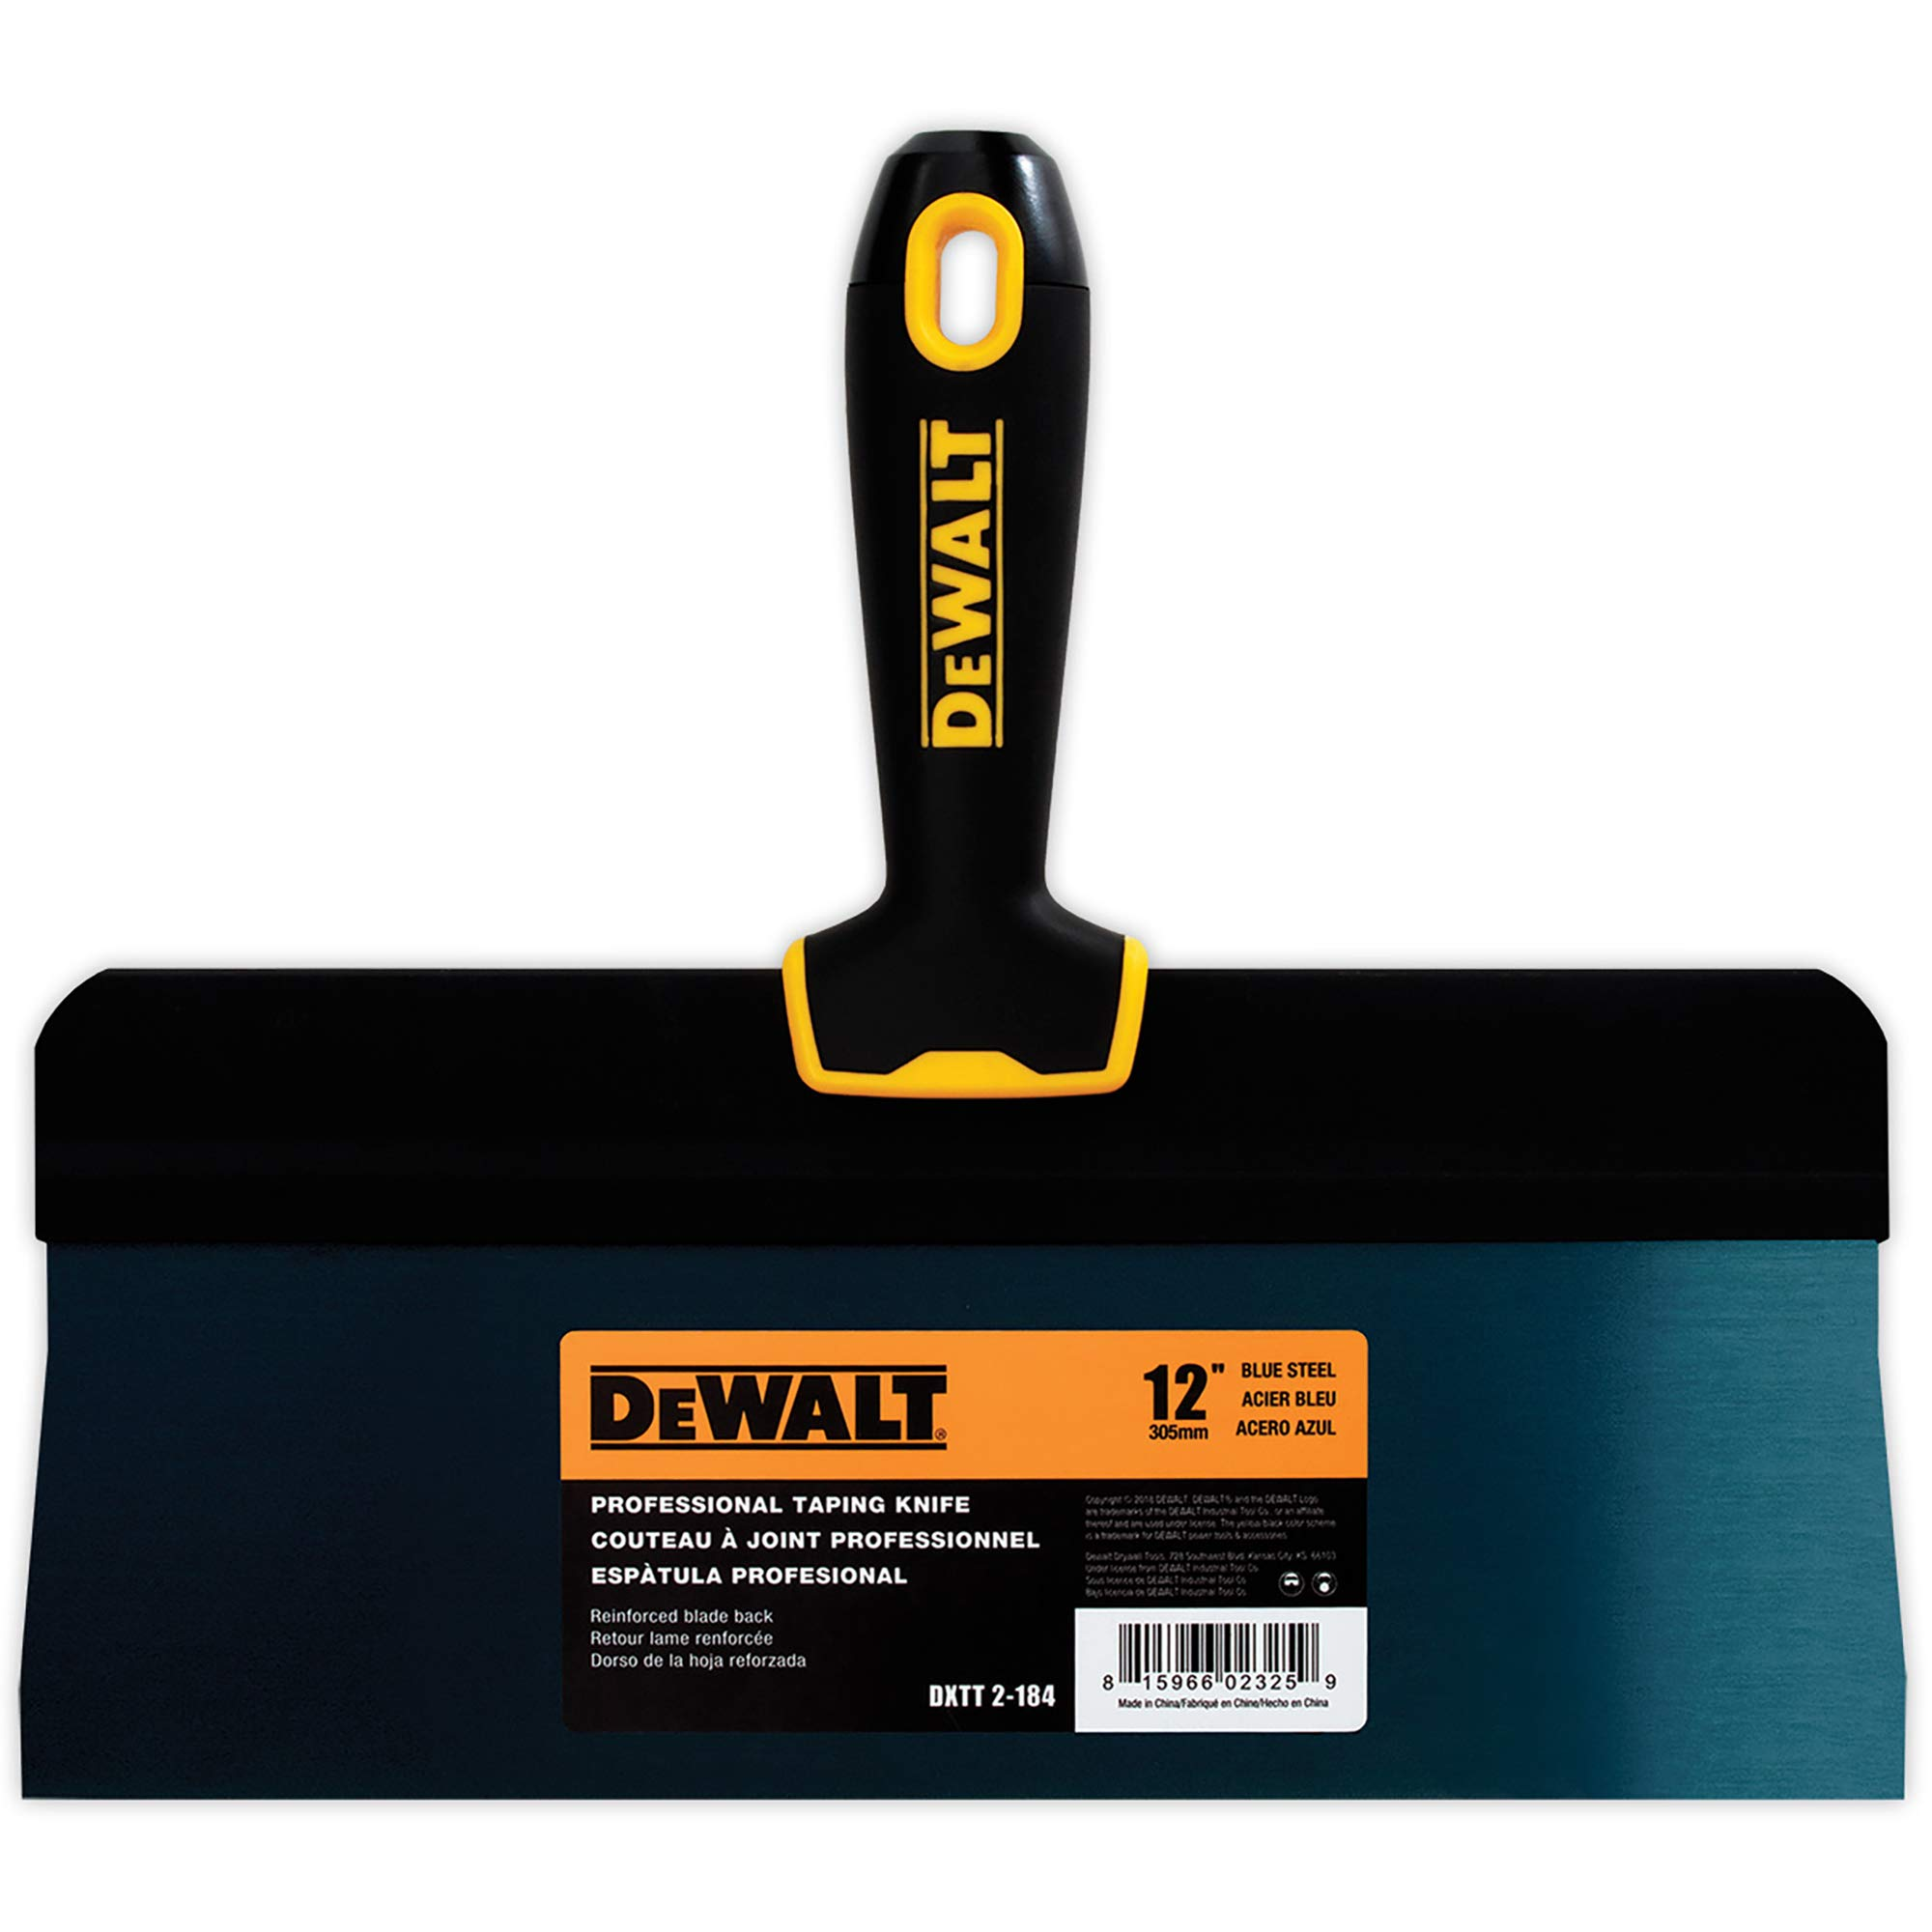 DEWALT 12-Inch Big Back Taping Knife | Blue Steel w/Soft Grip Handle | DXTT-2-184